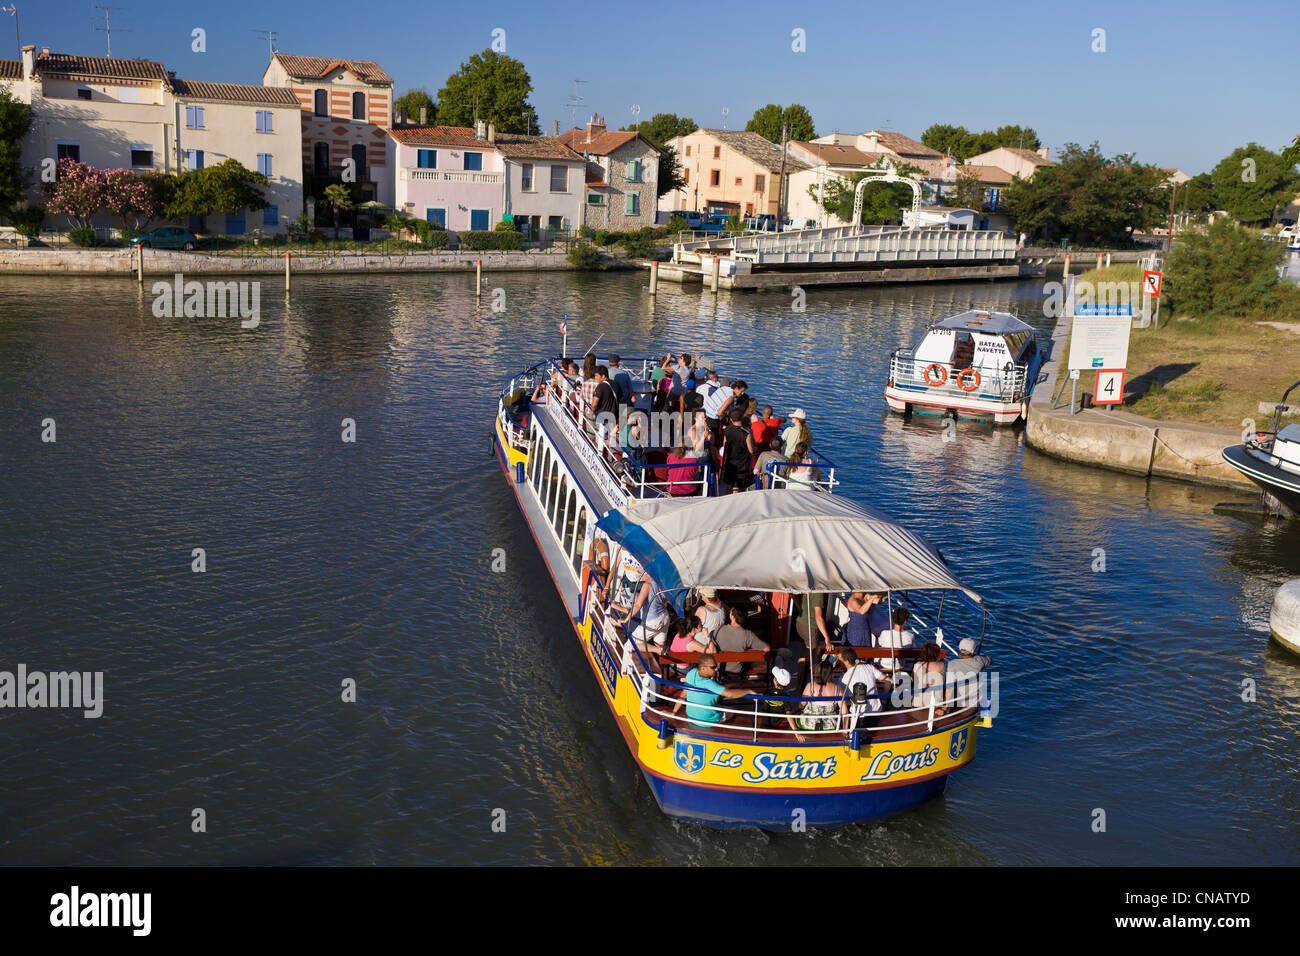 France, Gard, Aigues Mortes, cruise on the maritime channel - Stock Image